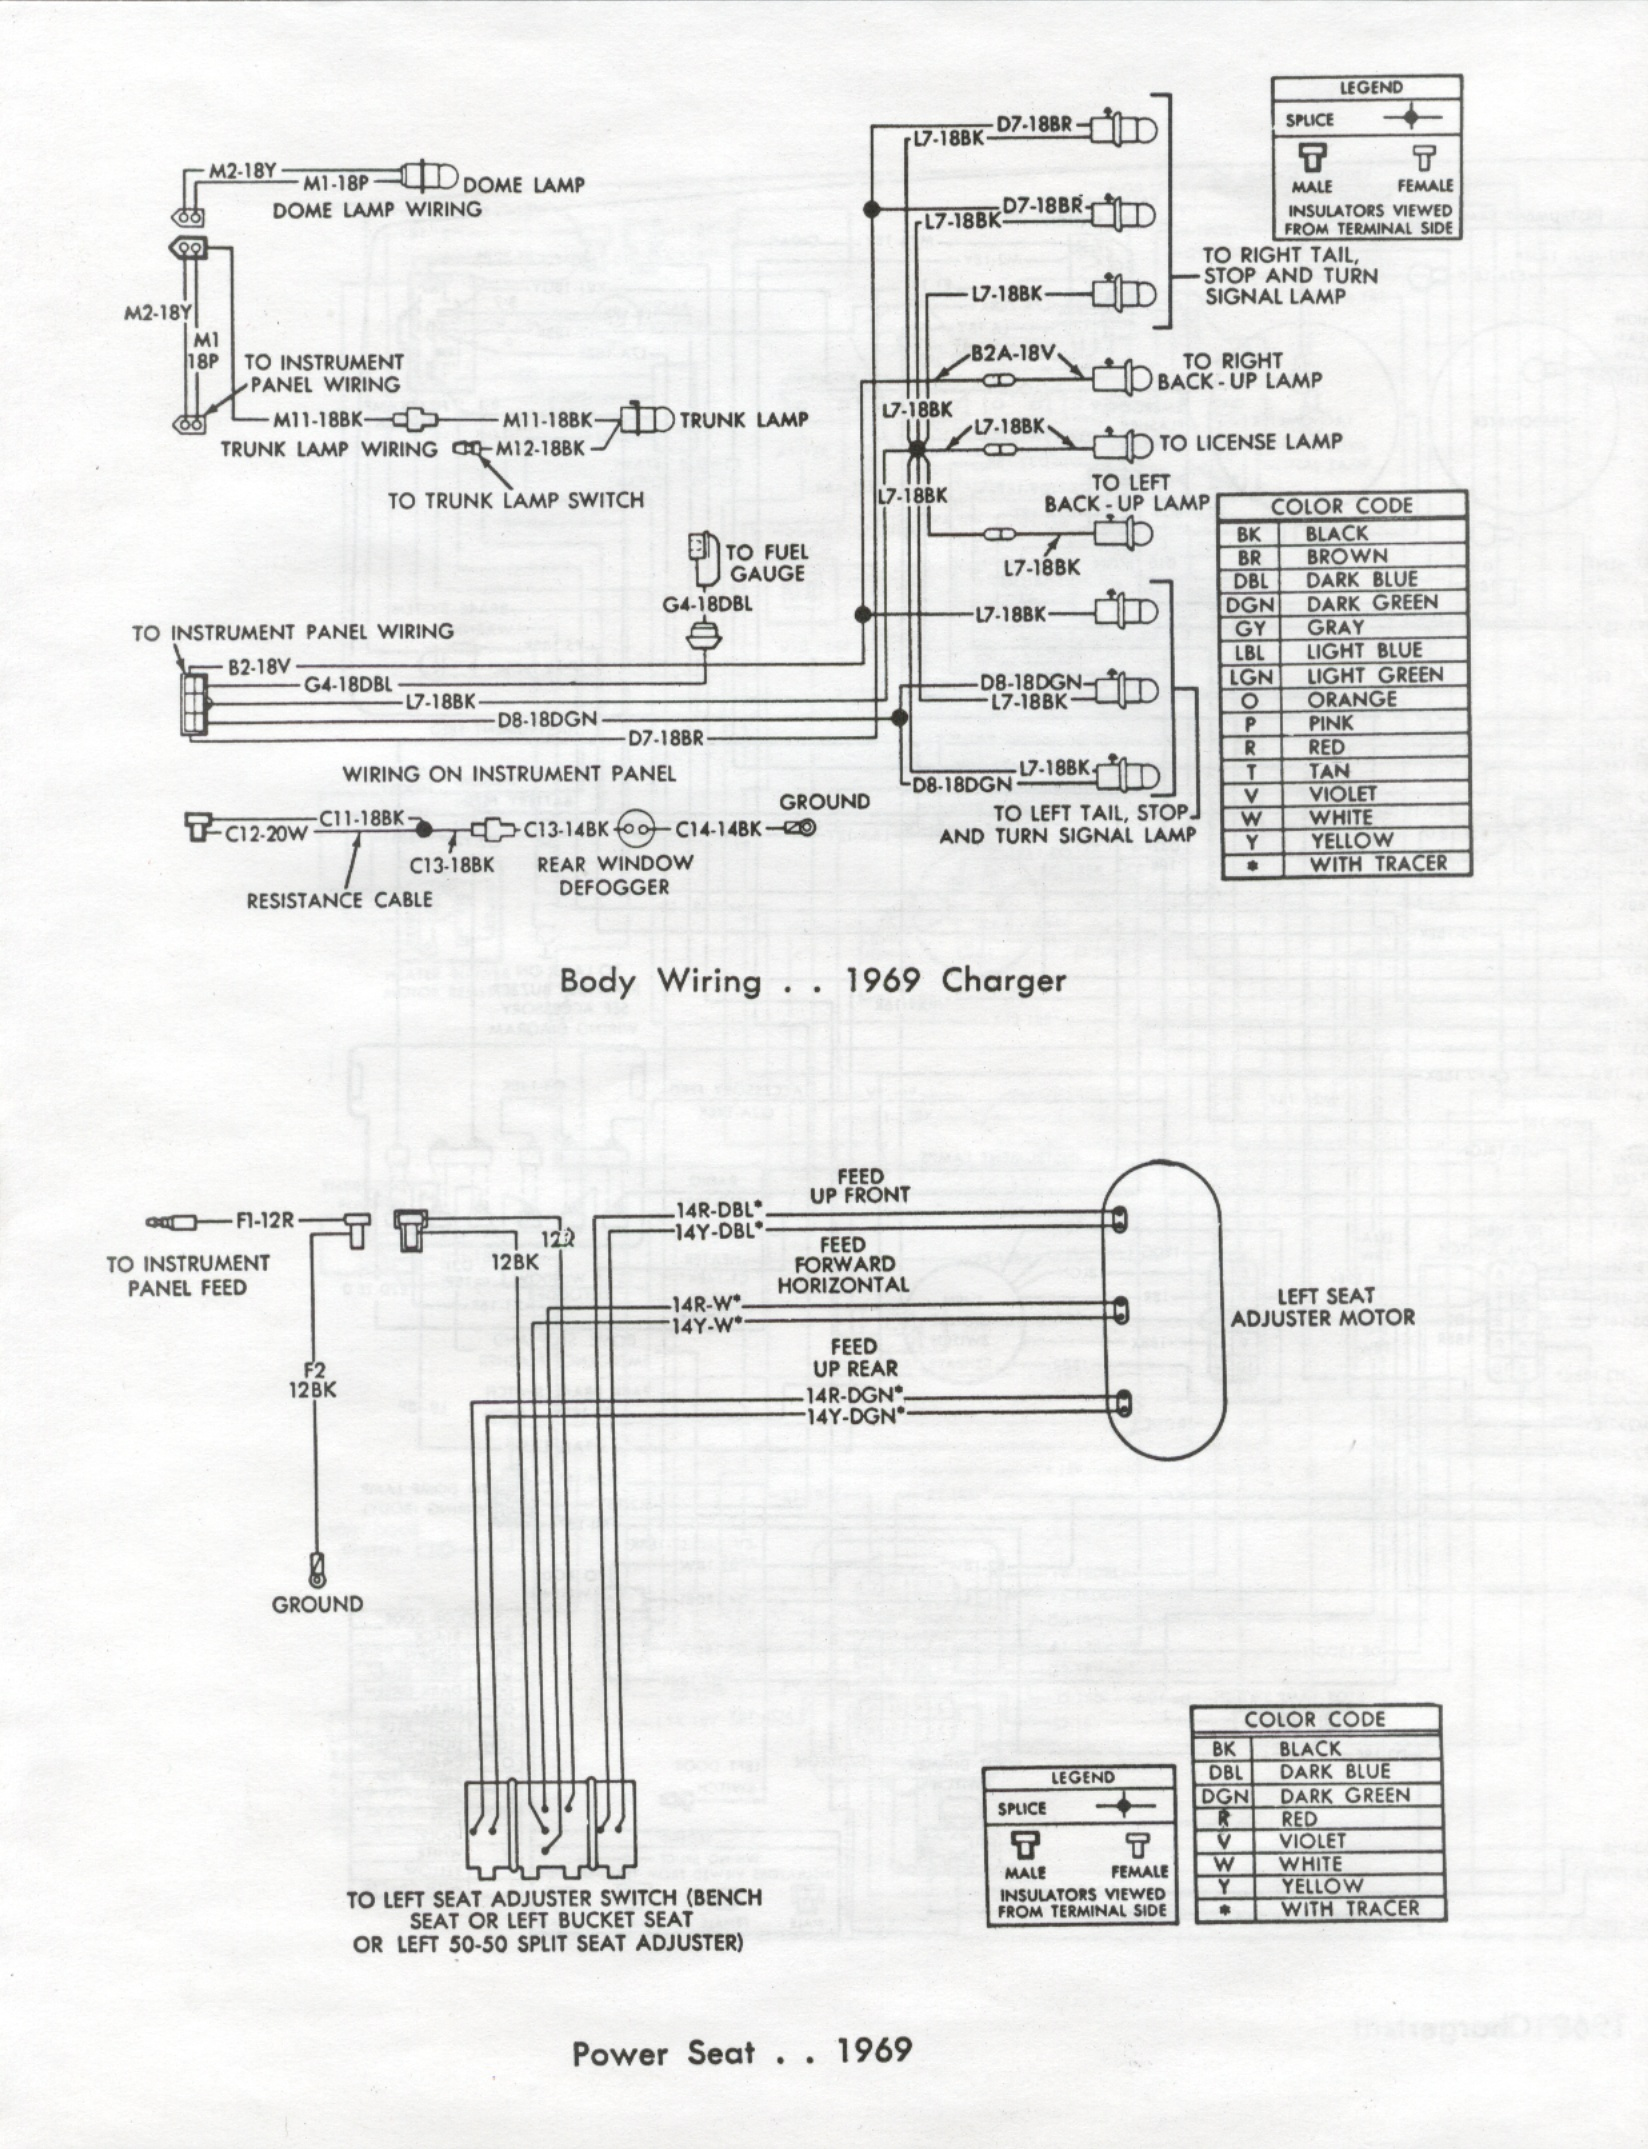 [DIAGRAM] 2001 Pontiac Grand Am Headlight Wiring Diagram